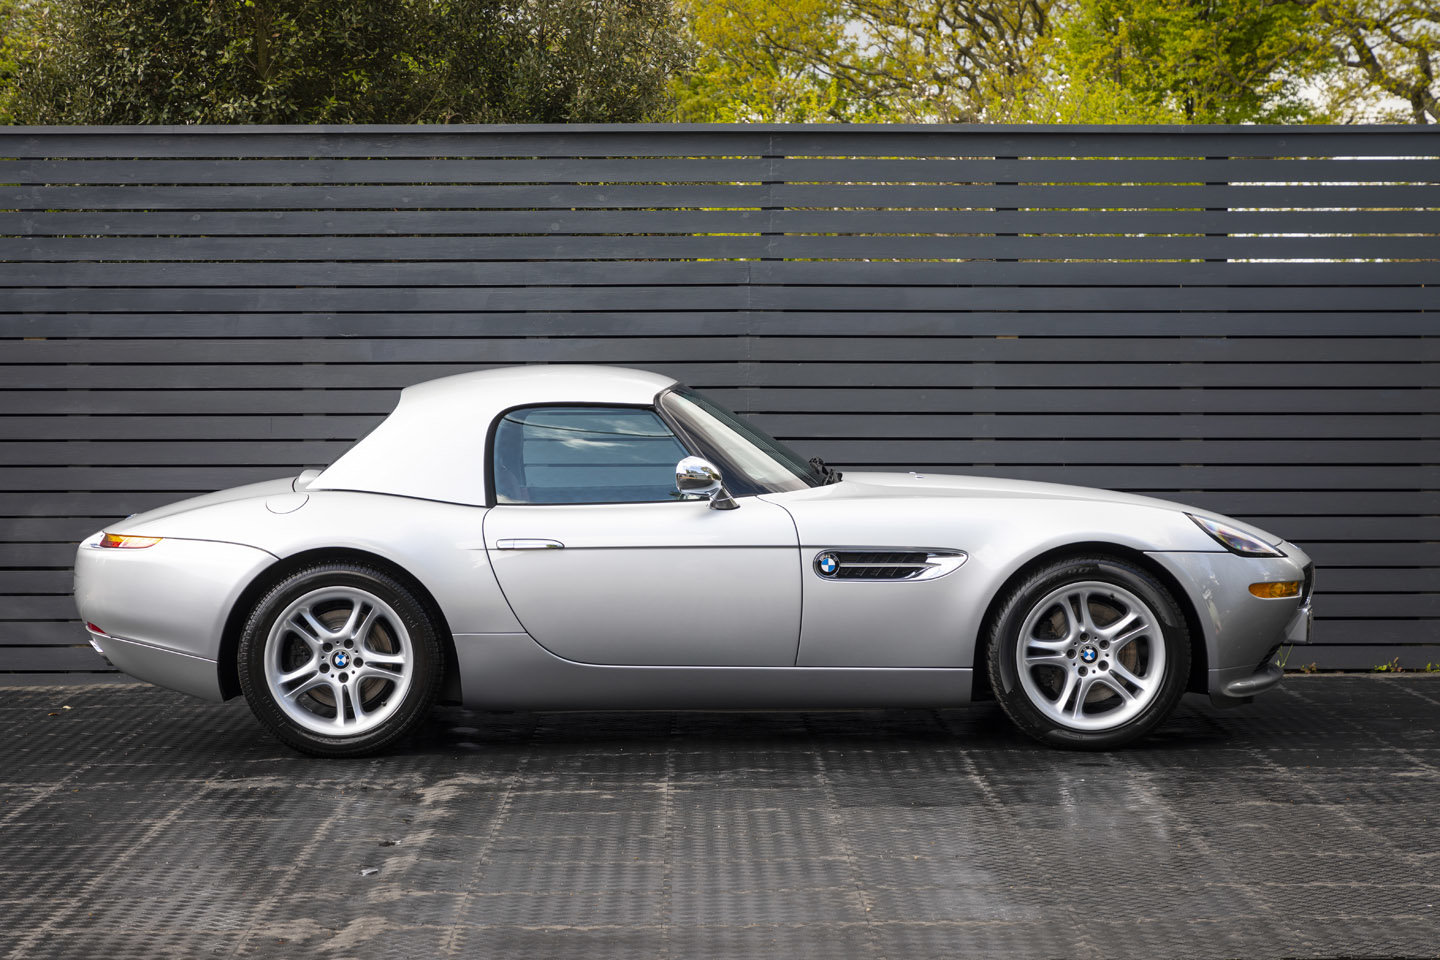 2001 BMW Z8 Roadster ONLY 10500 MILES UK CAR For Sale (picture 5 of 22)